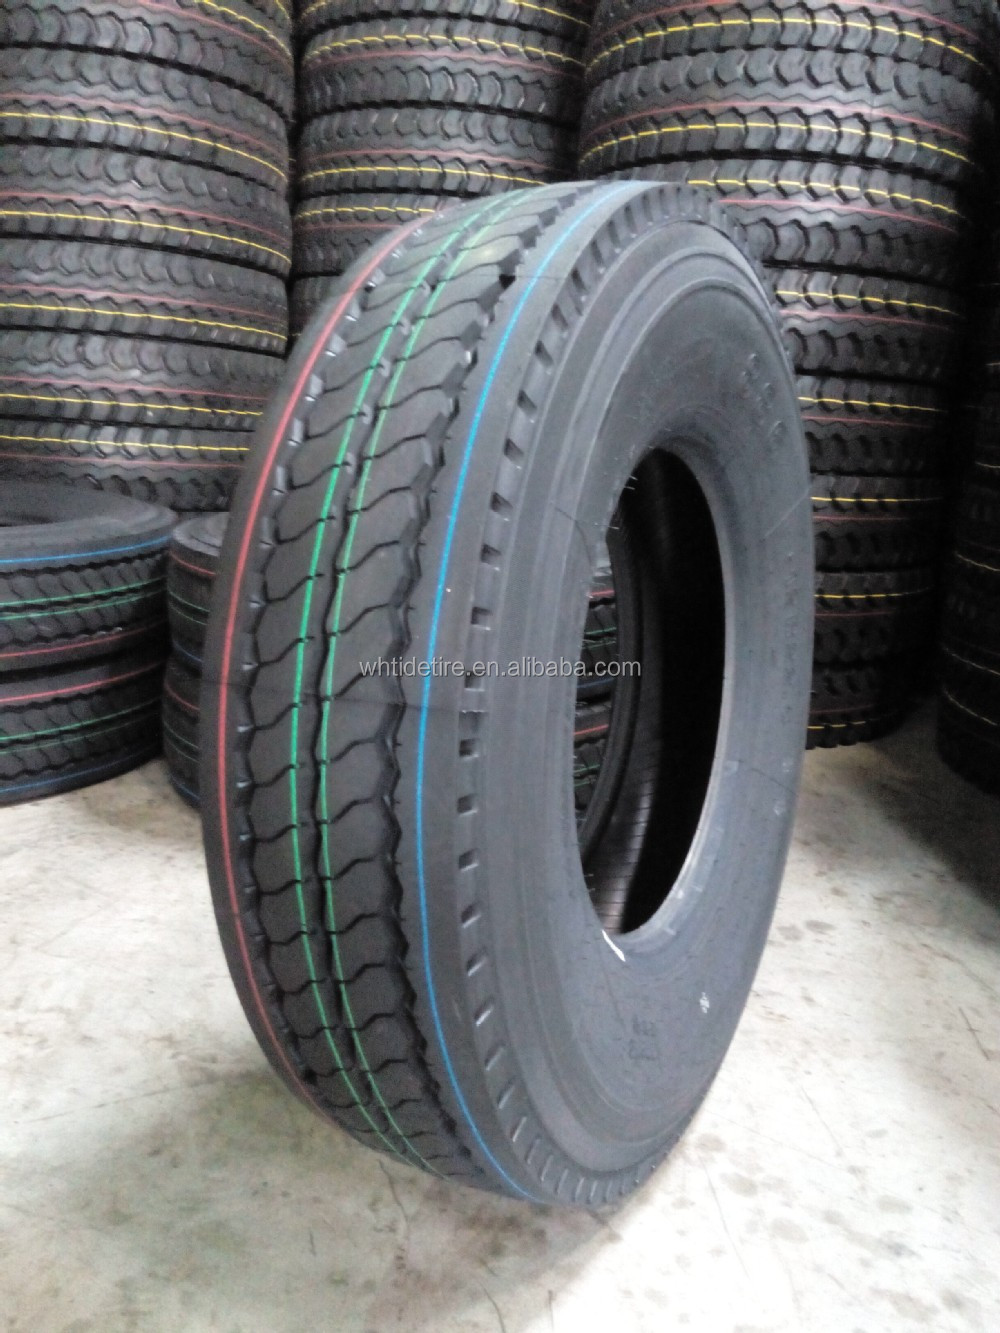 high performance excellent quality annaite radial truck tires companies looking for distributor